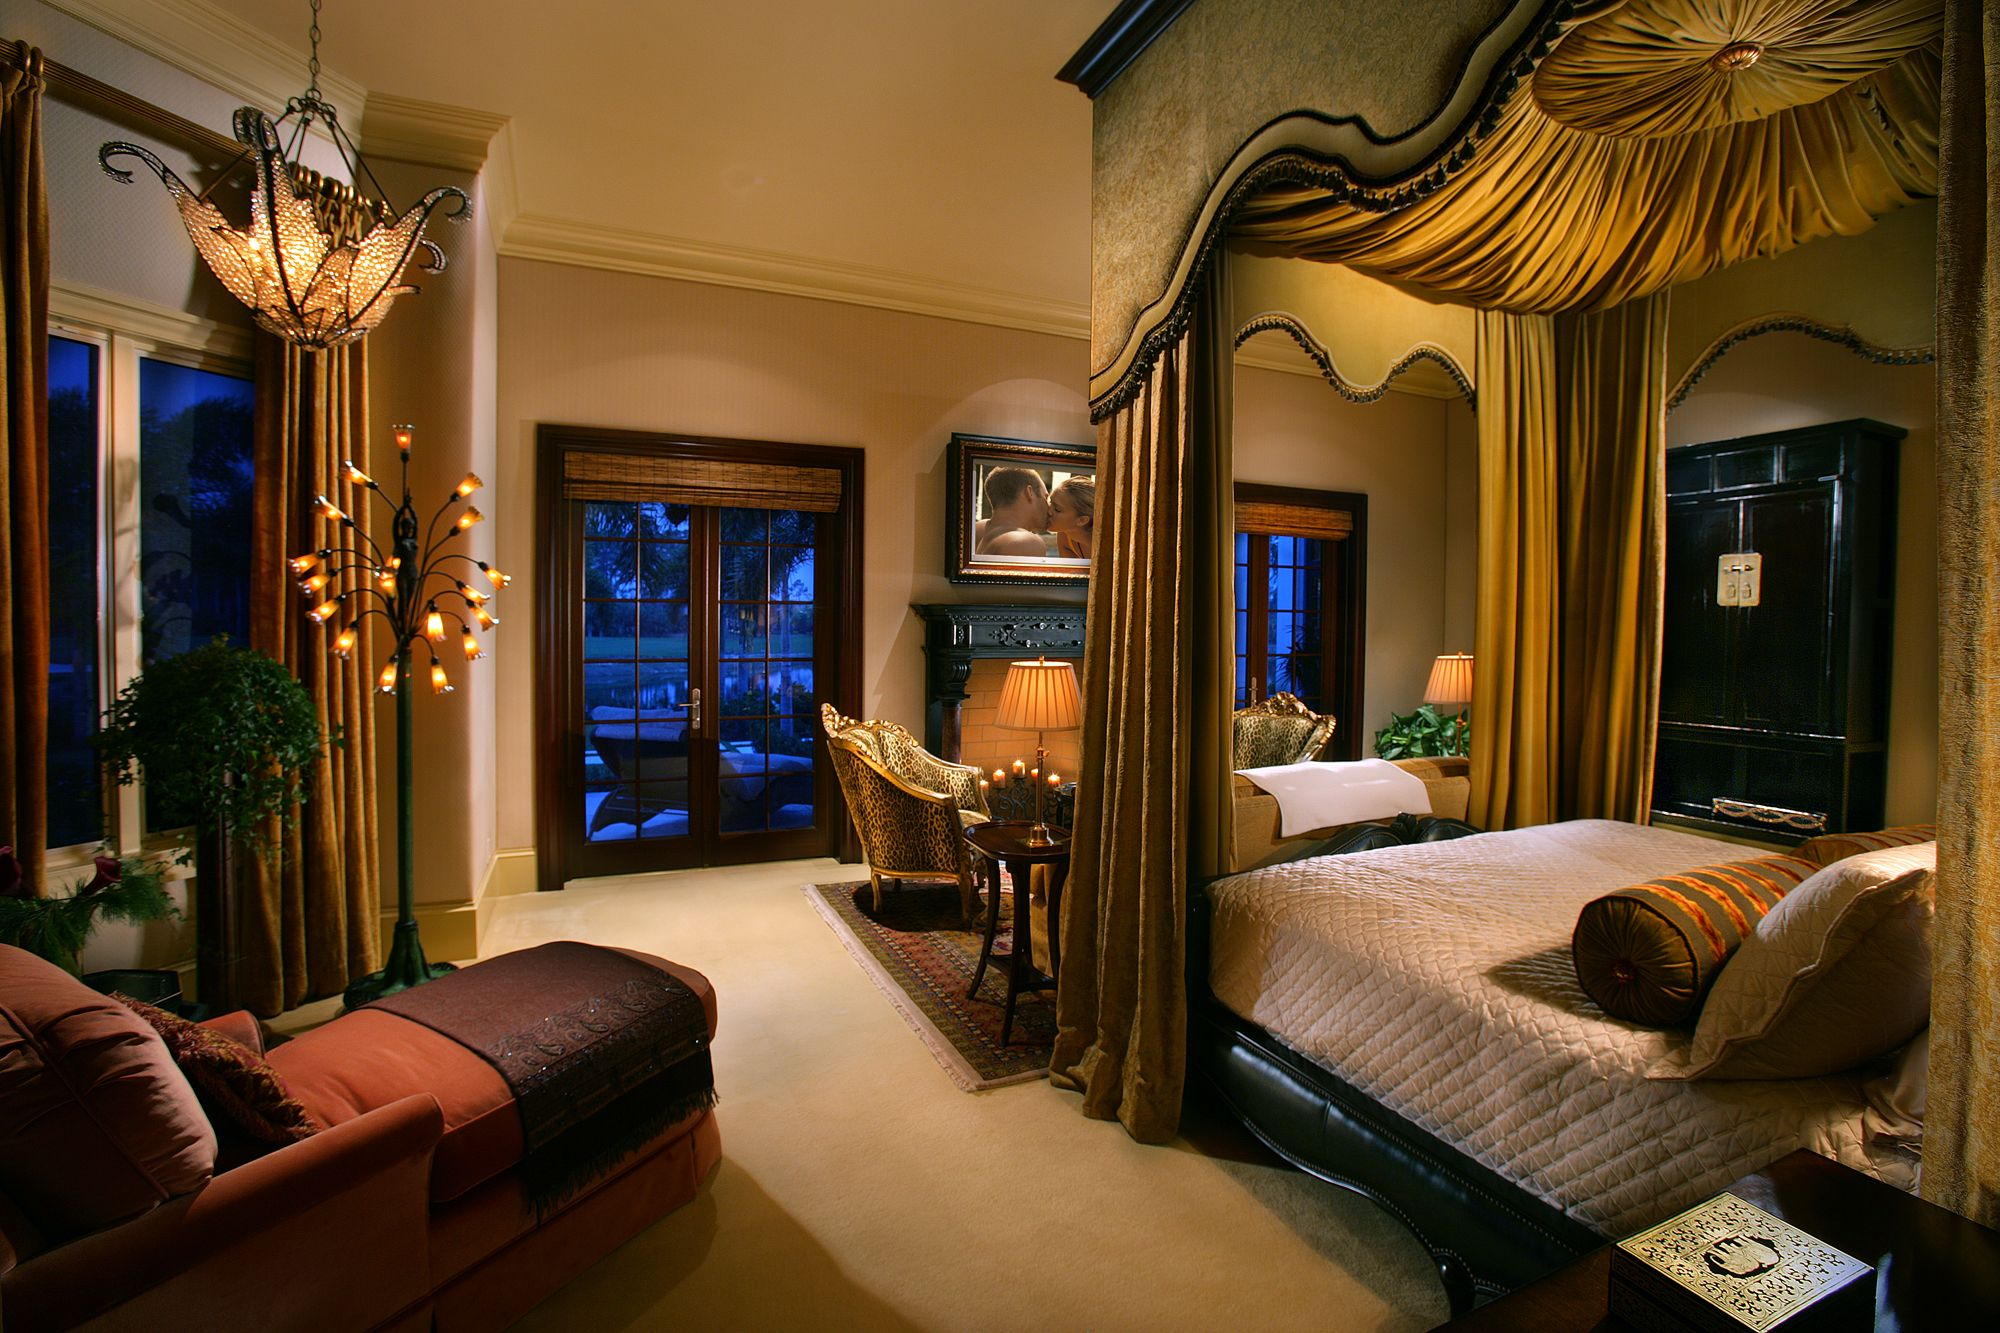 a quiet evening in this romantic bedroom will be the on romantic trend master bedroom ideas id=34922